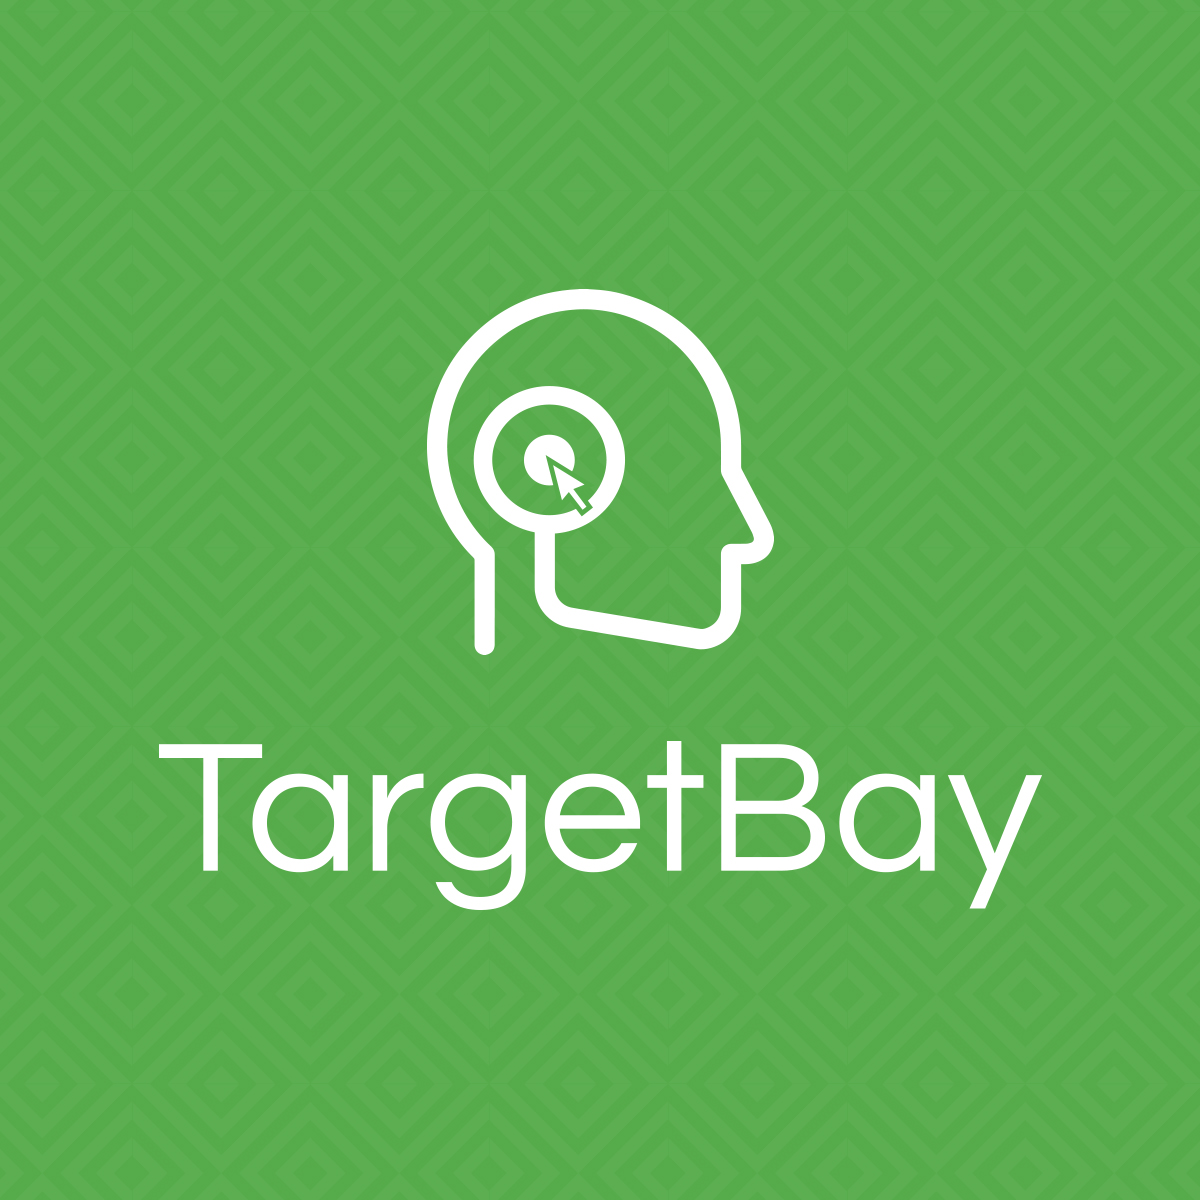 TargetBay Upsell & Cross Sell App (Related Products)